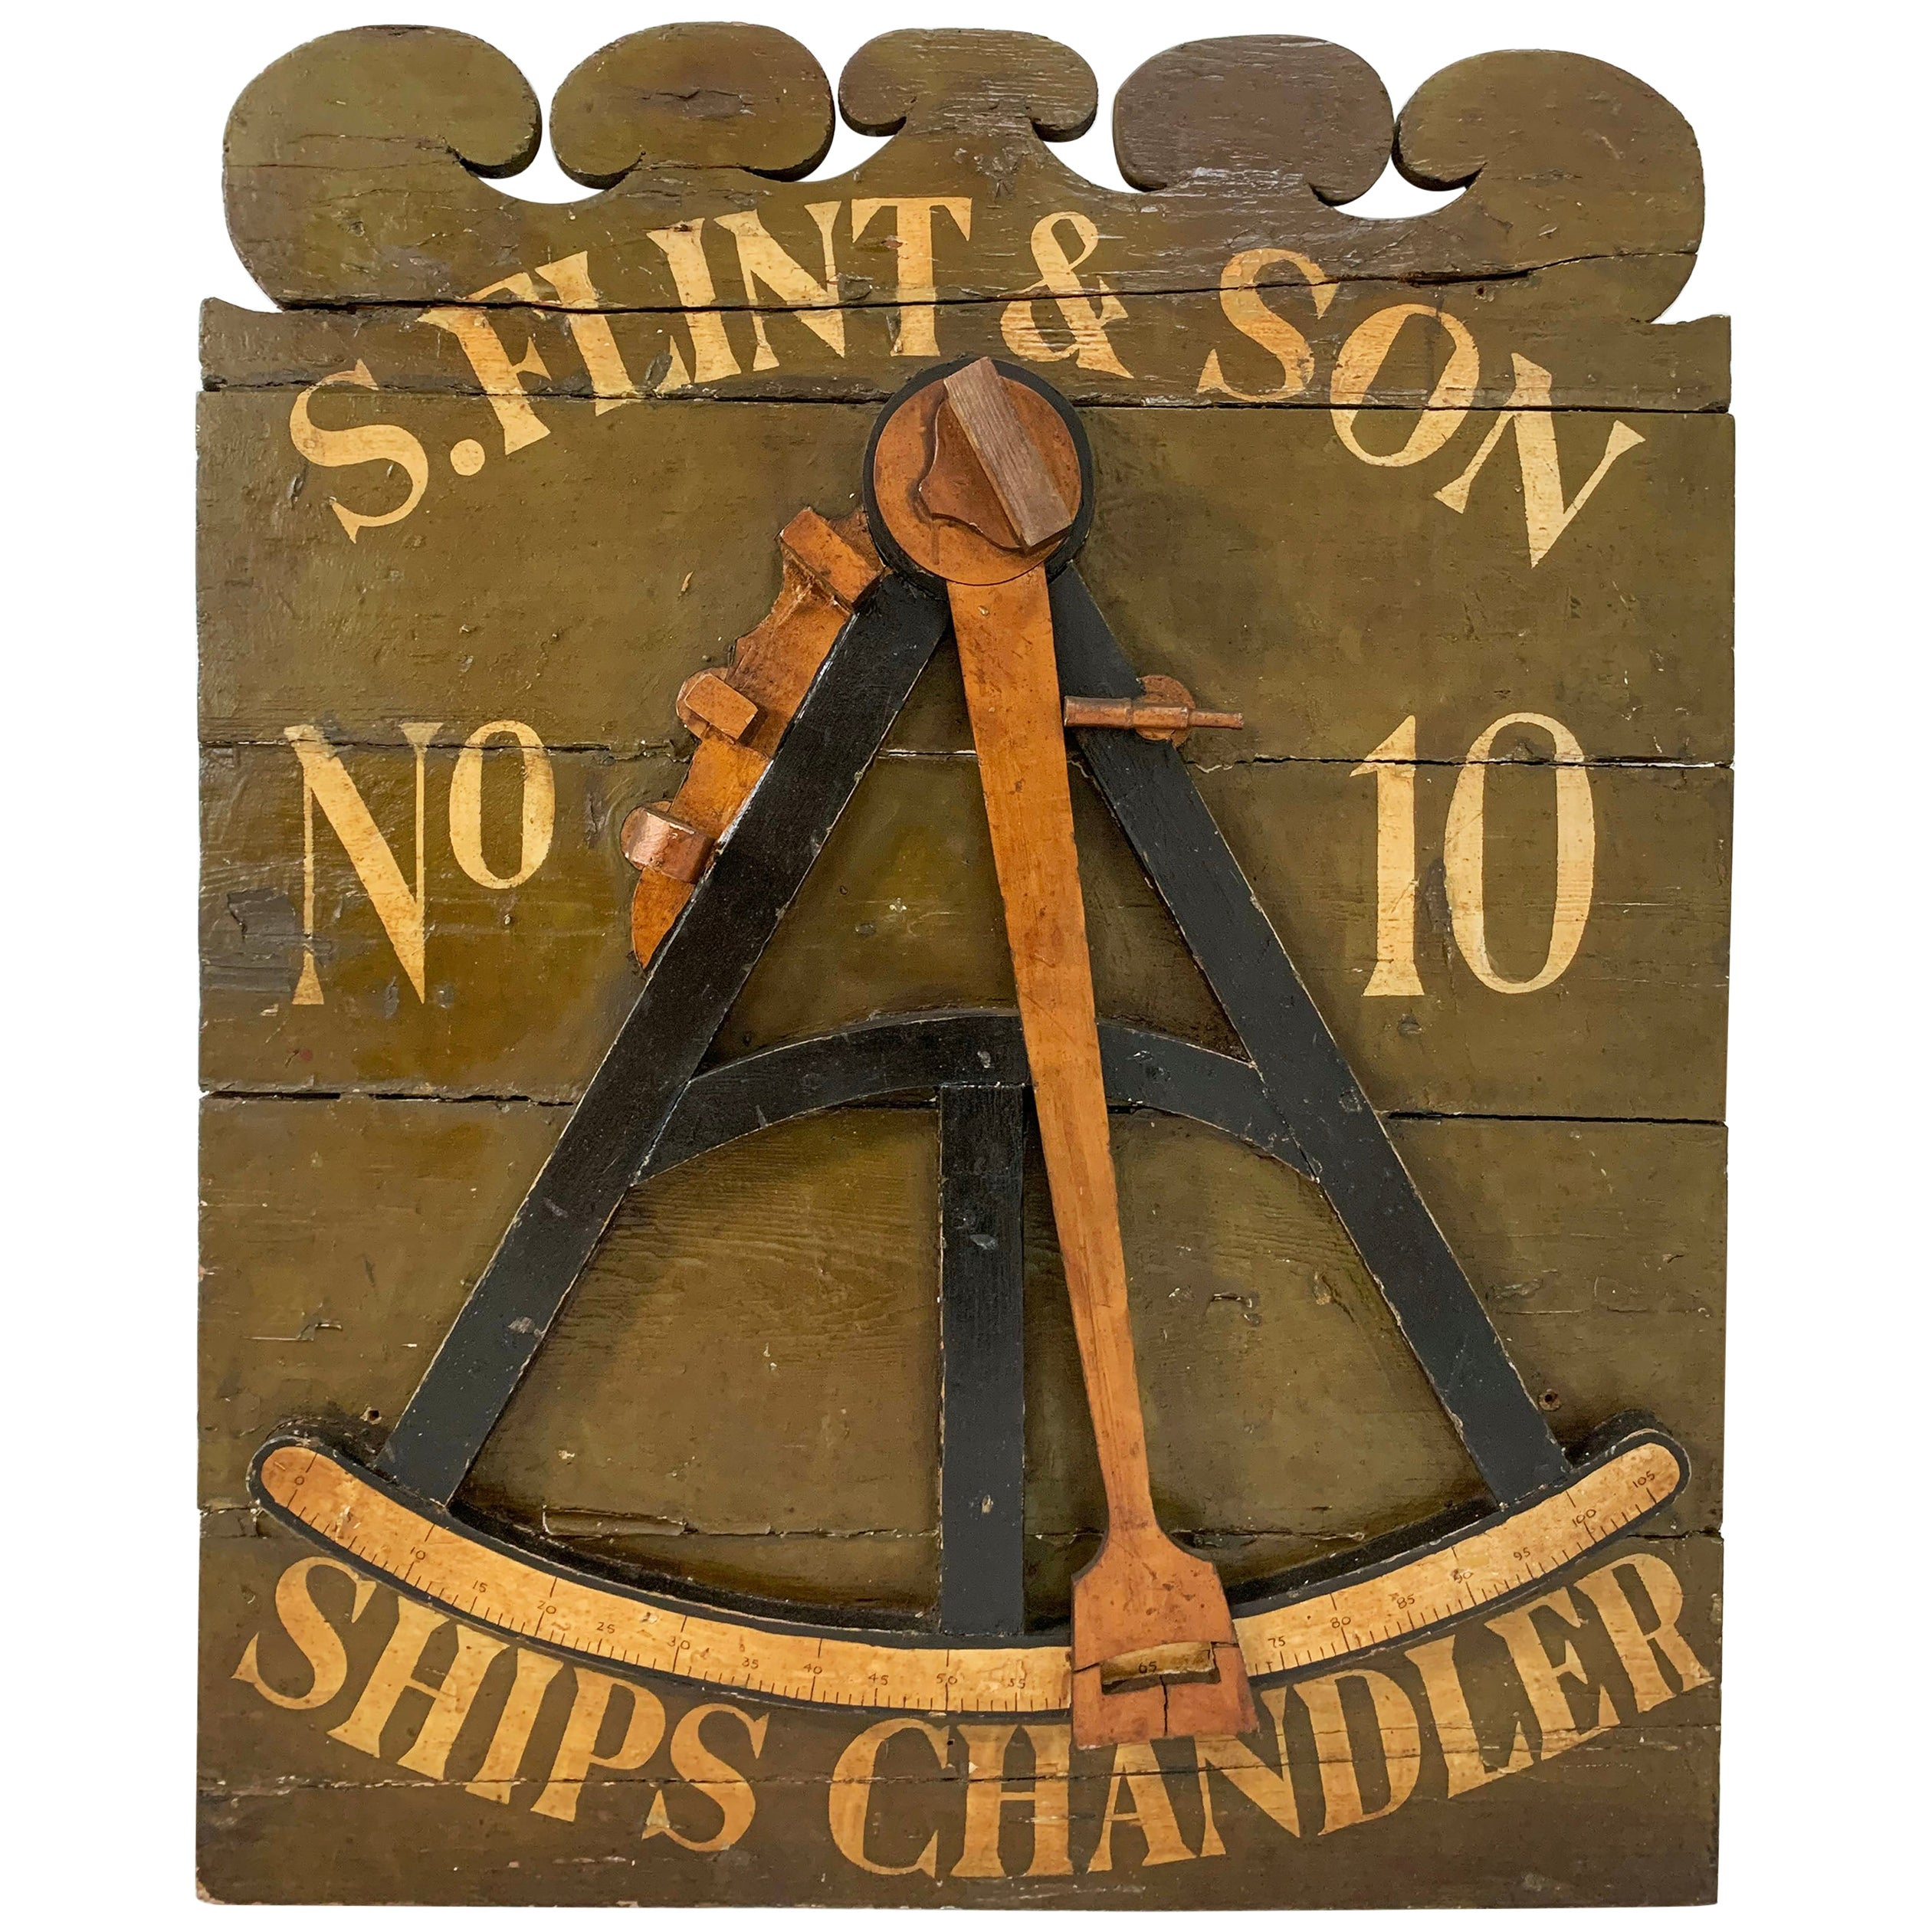 19th Century Antique Ships Chandler Shop Advertising Sign